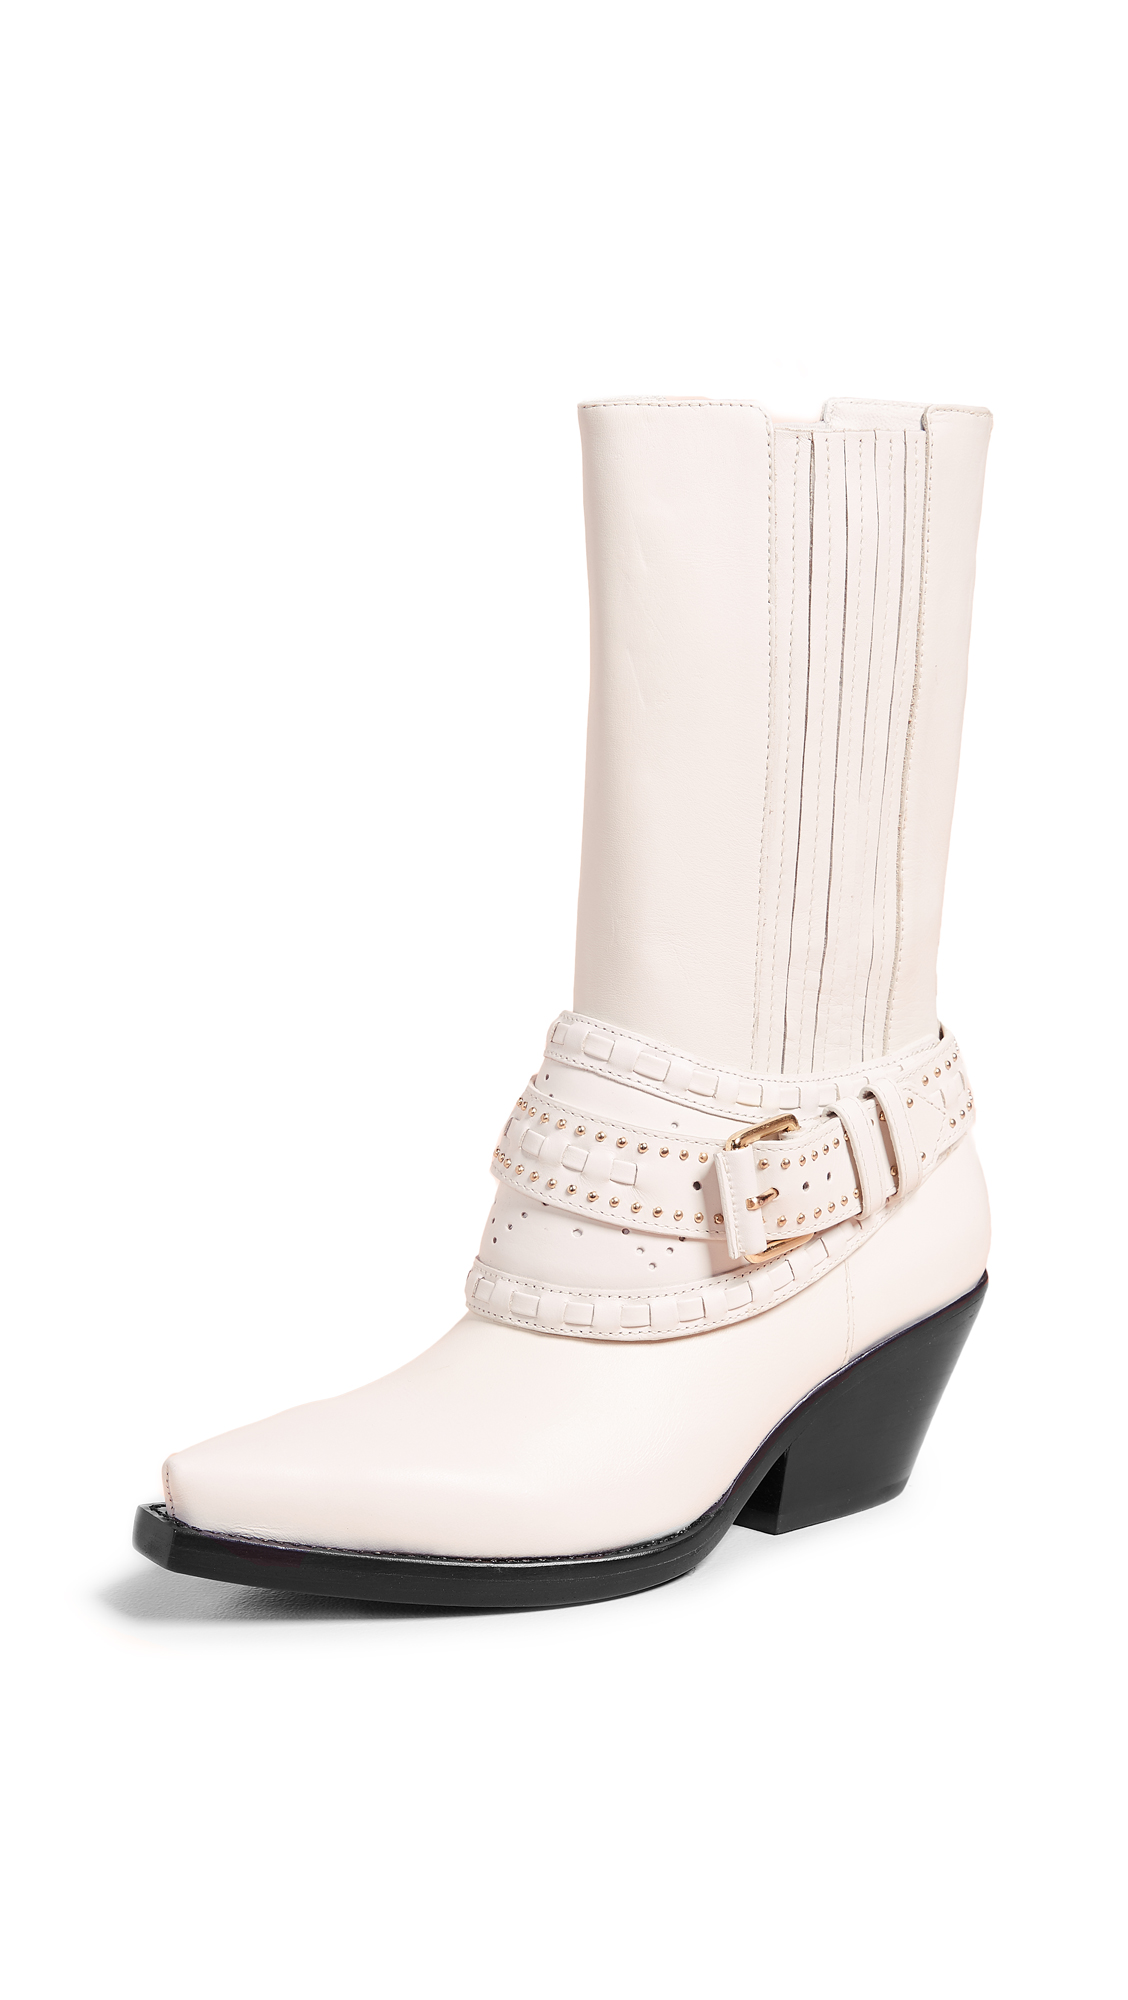 Zimmermann Cowboy Mid Calf Boots - White